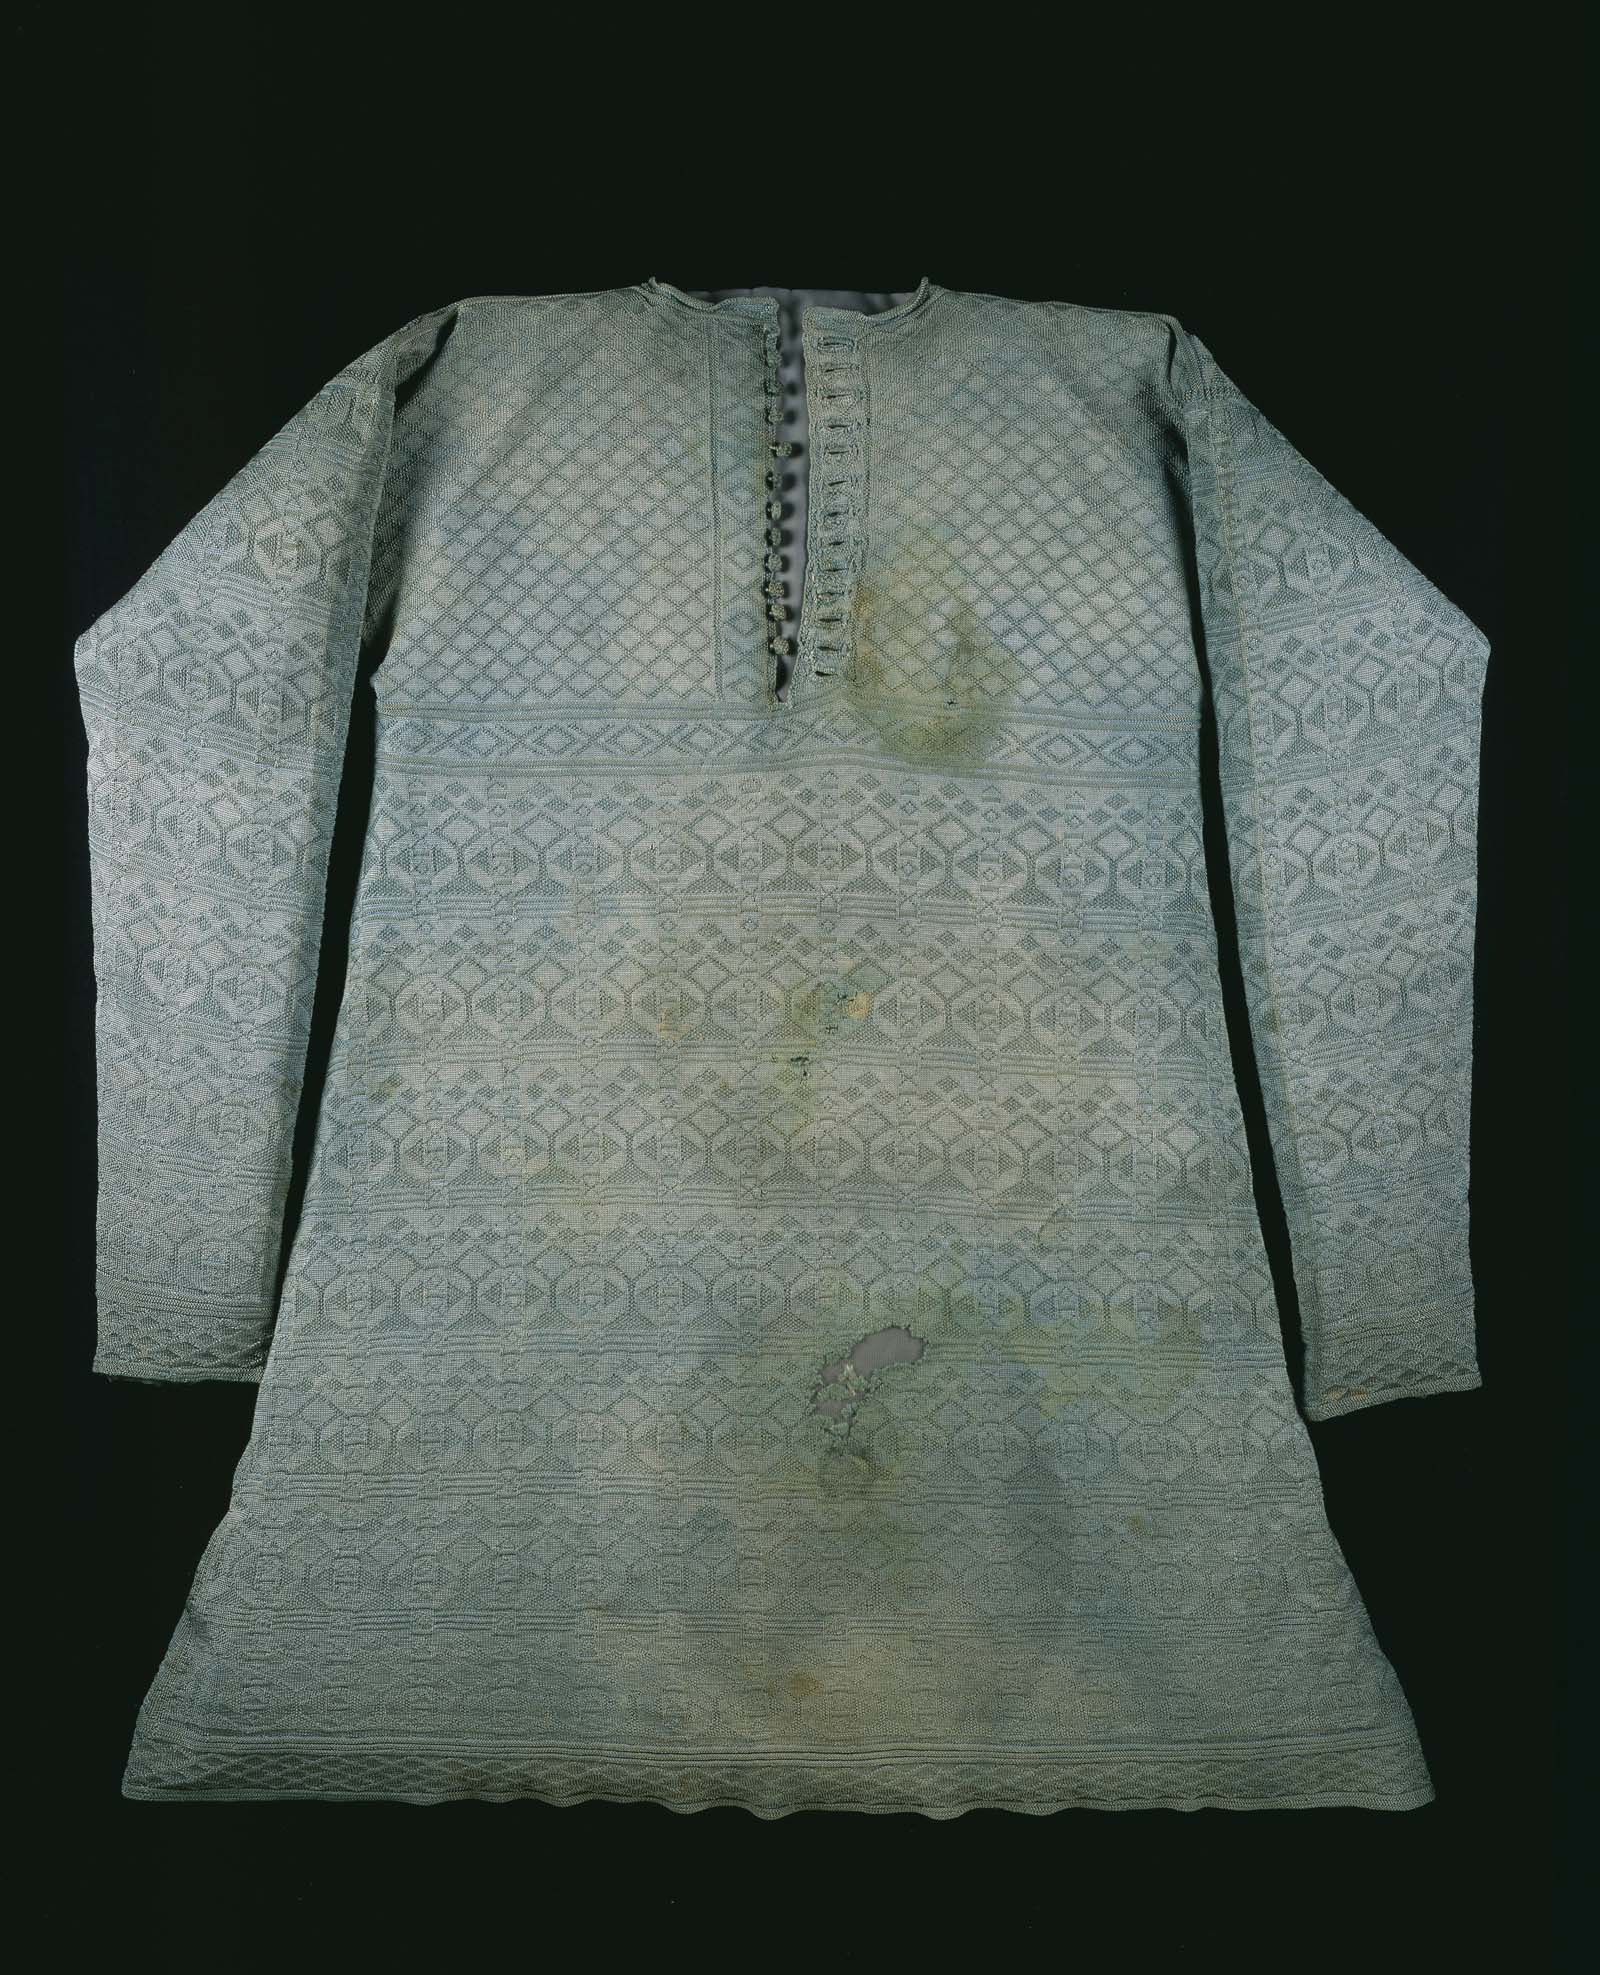 a photo of stained vest with long sleeves